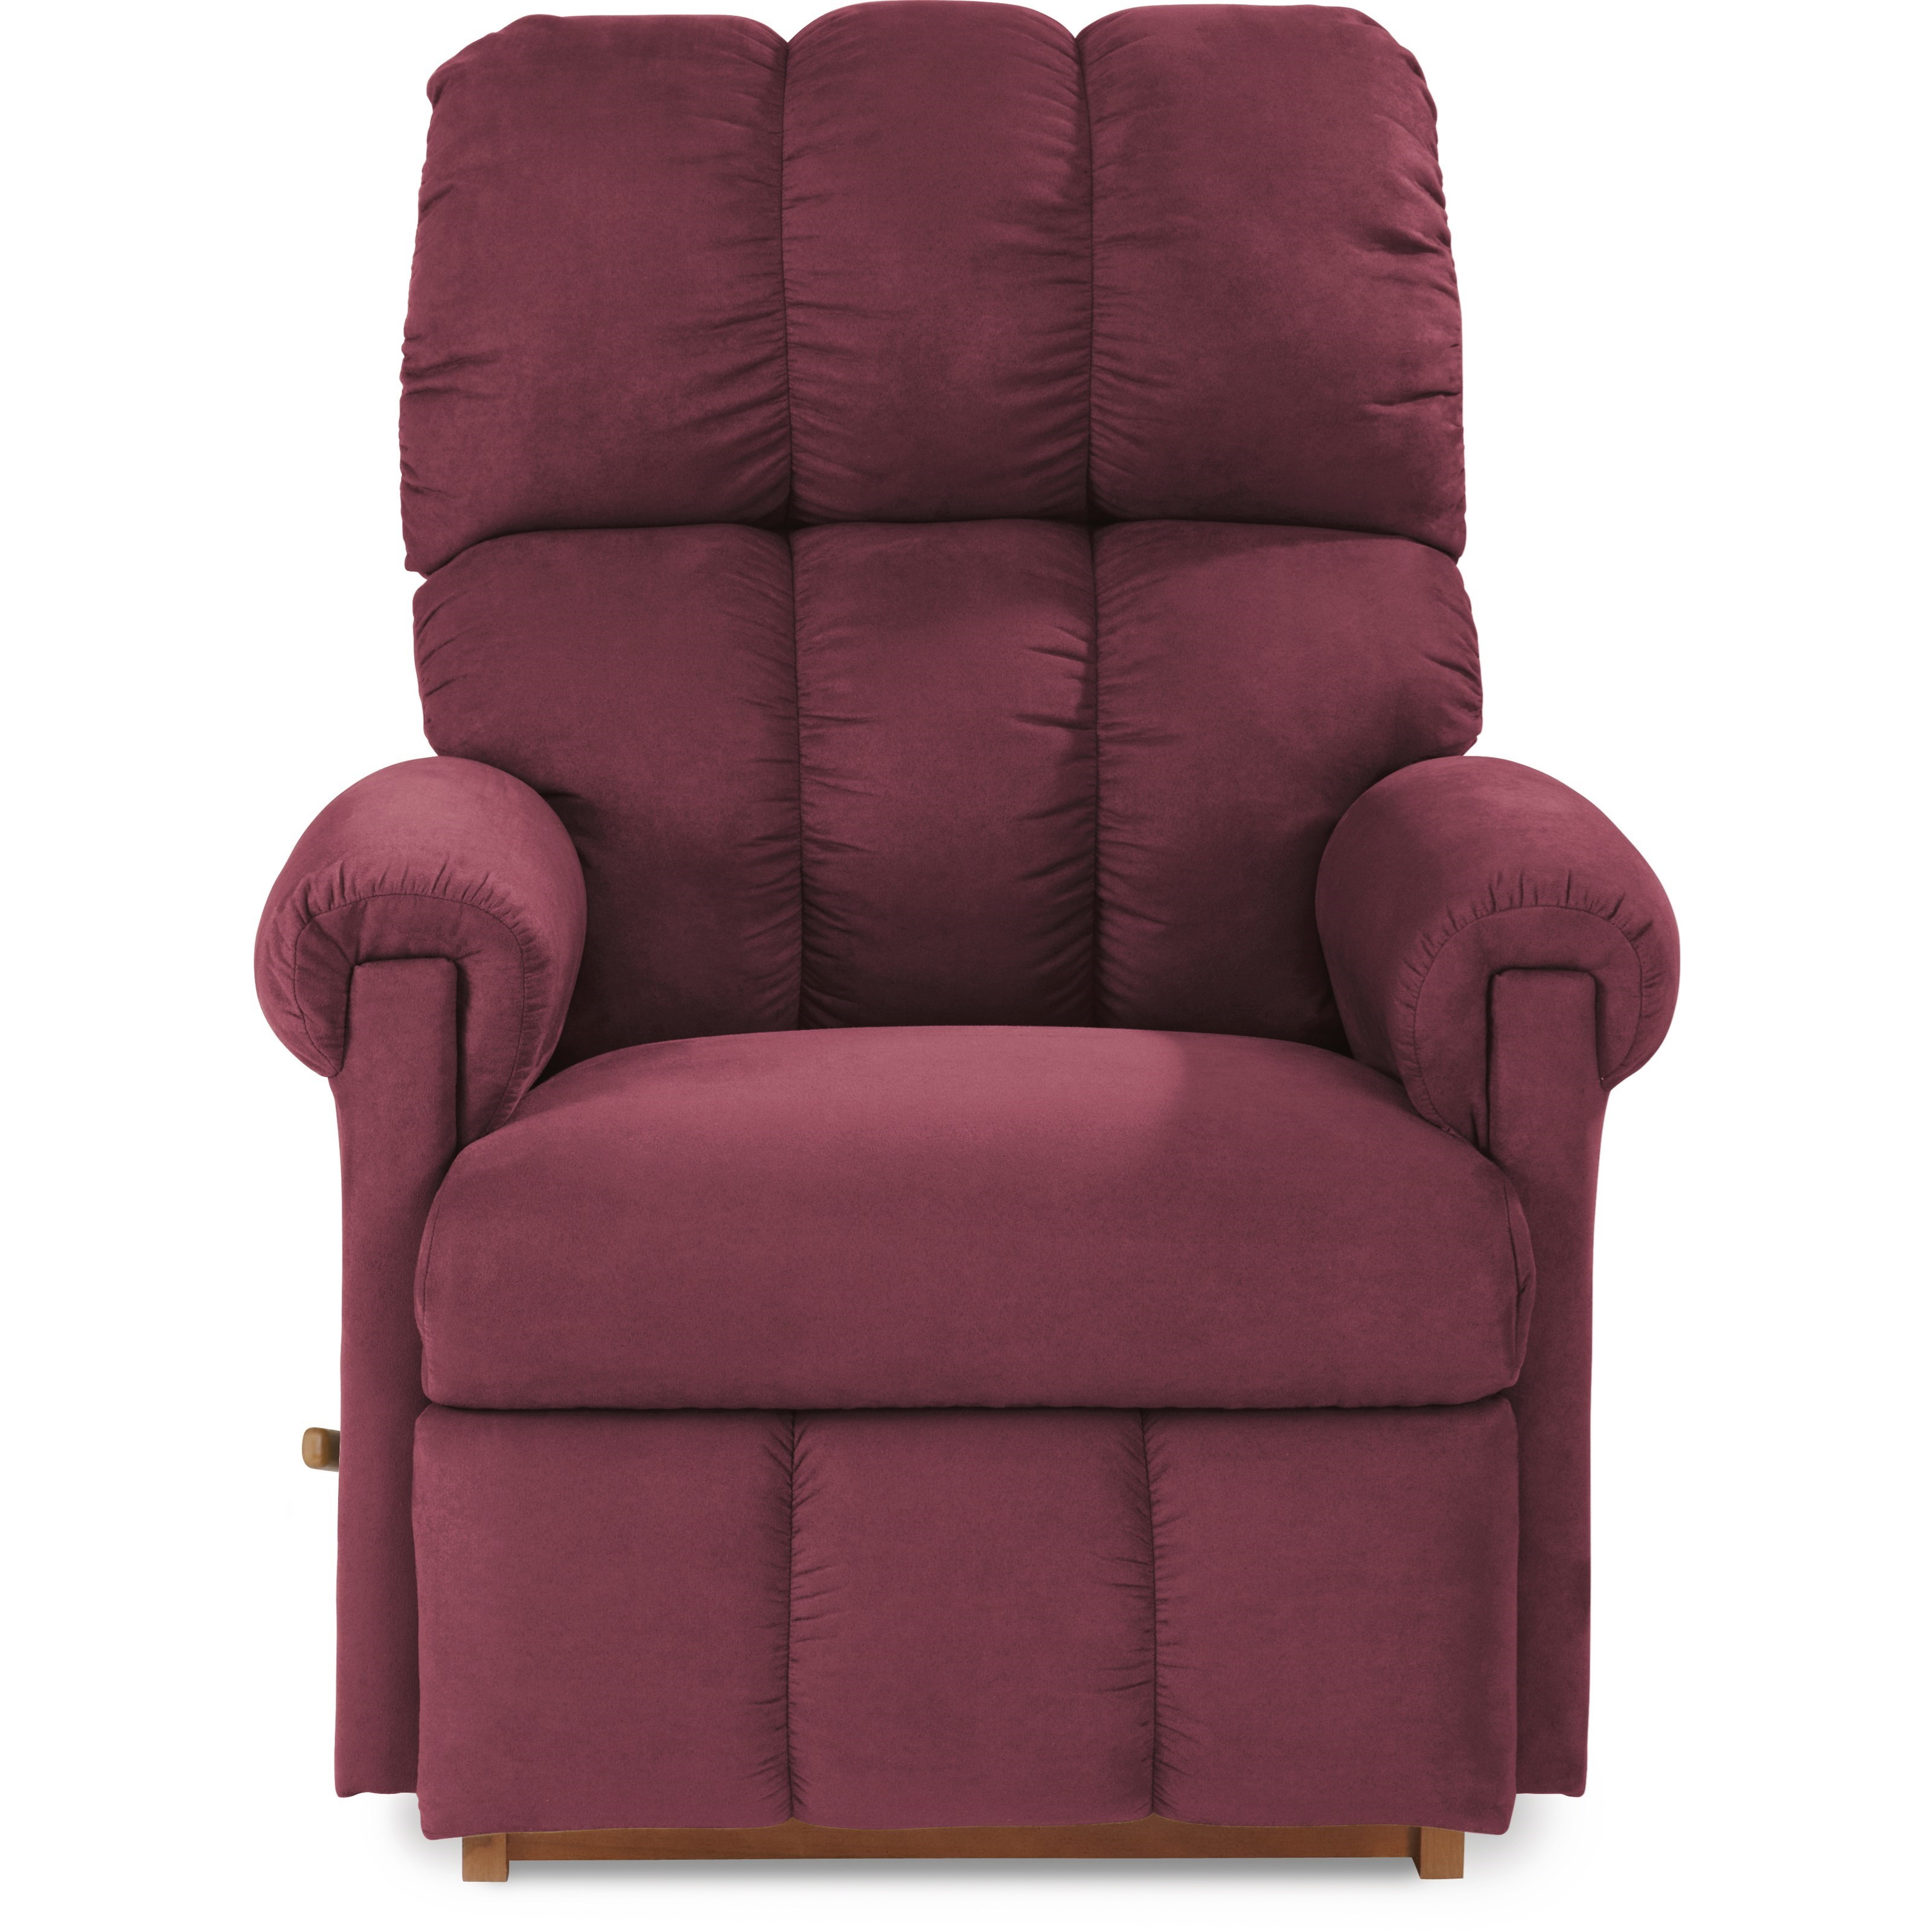 Recliners Vail Wall Recliner by La-Z-Boy at Johnny Janosik